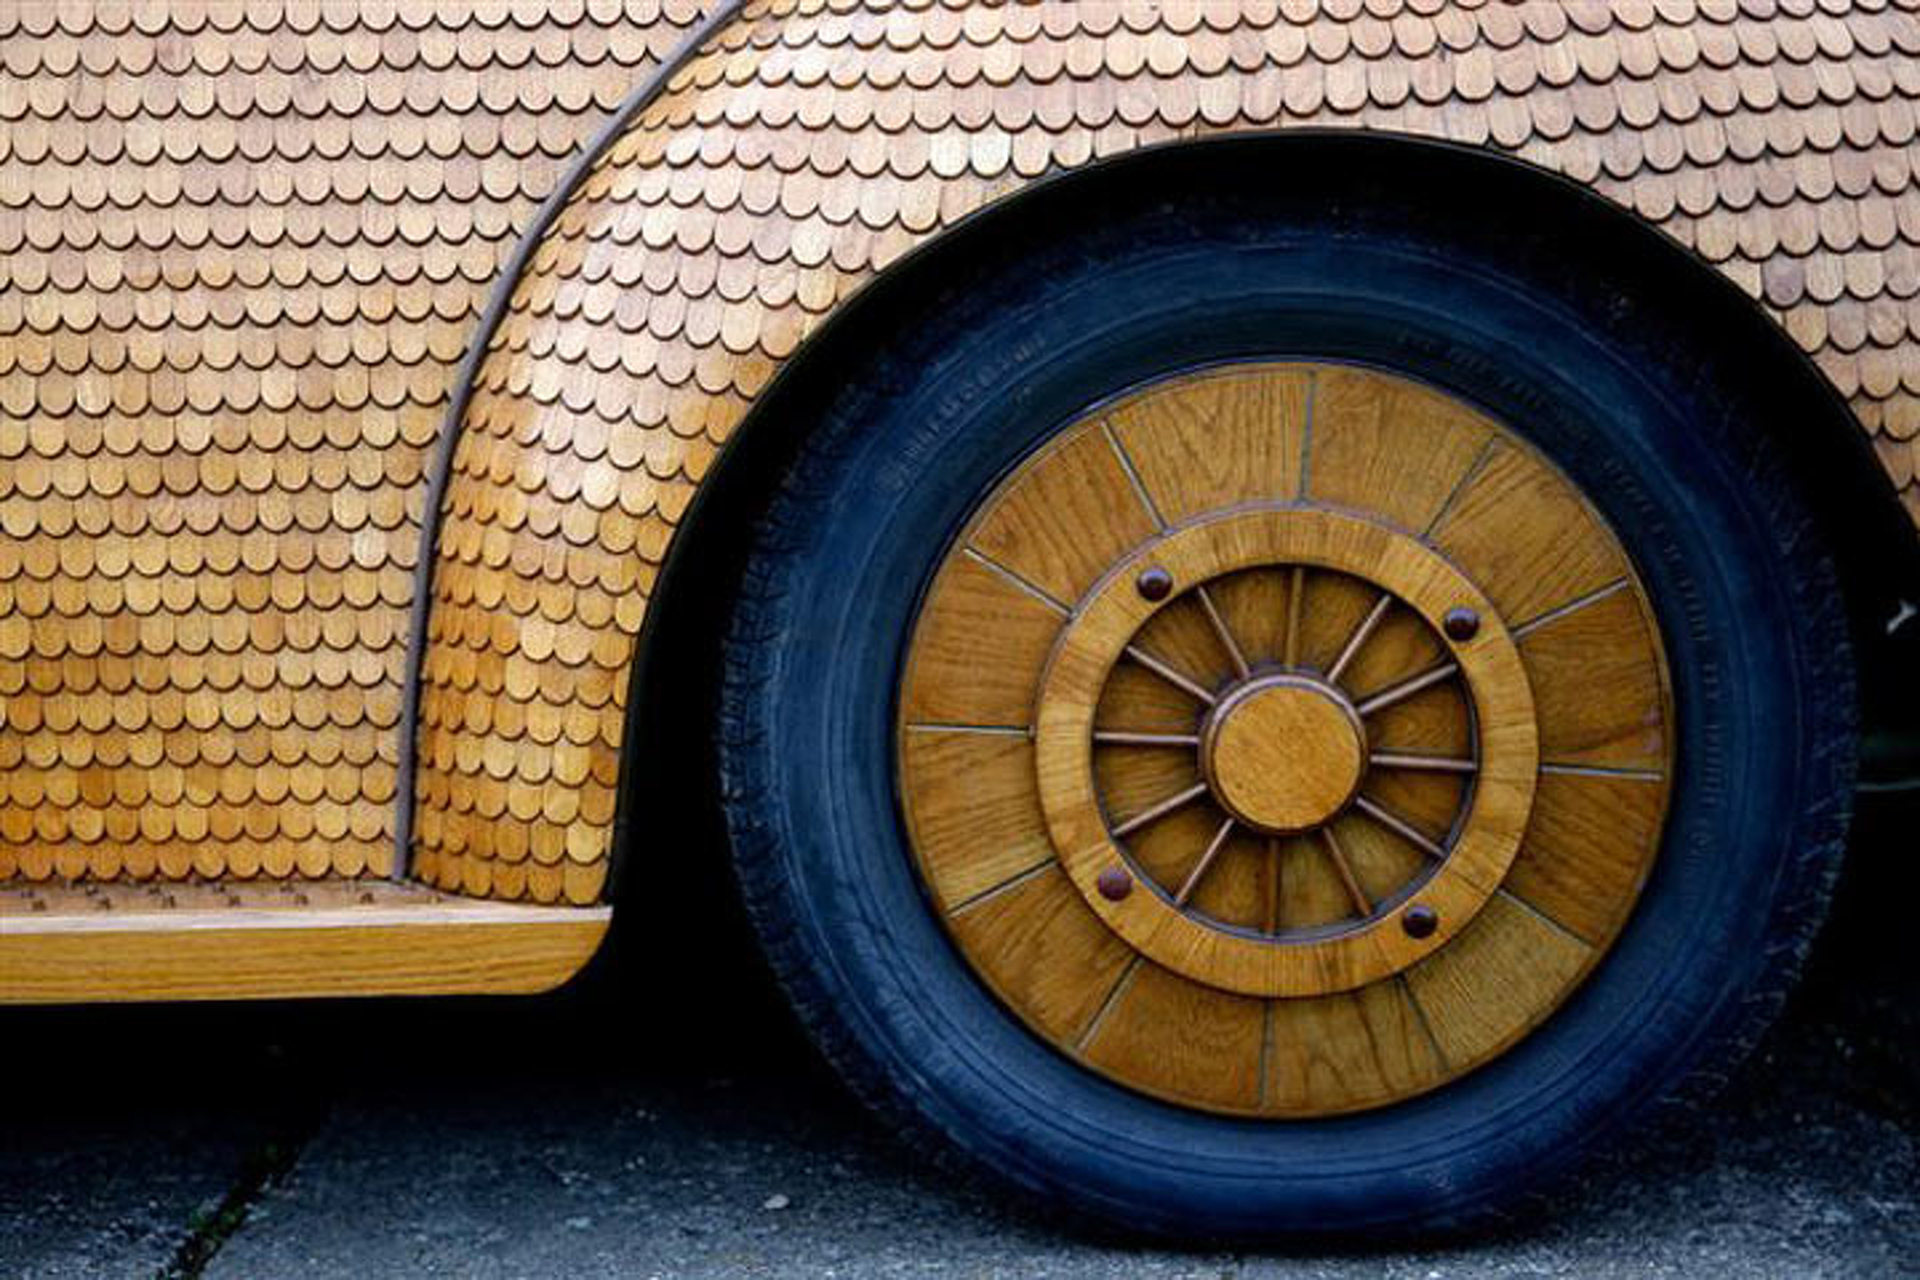 Woodn't You Like to Drive This VW Beetle?